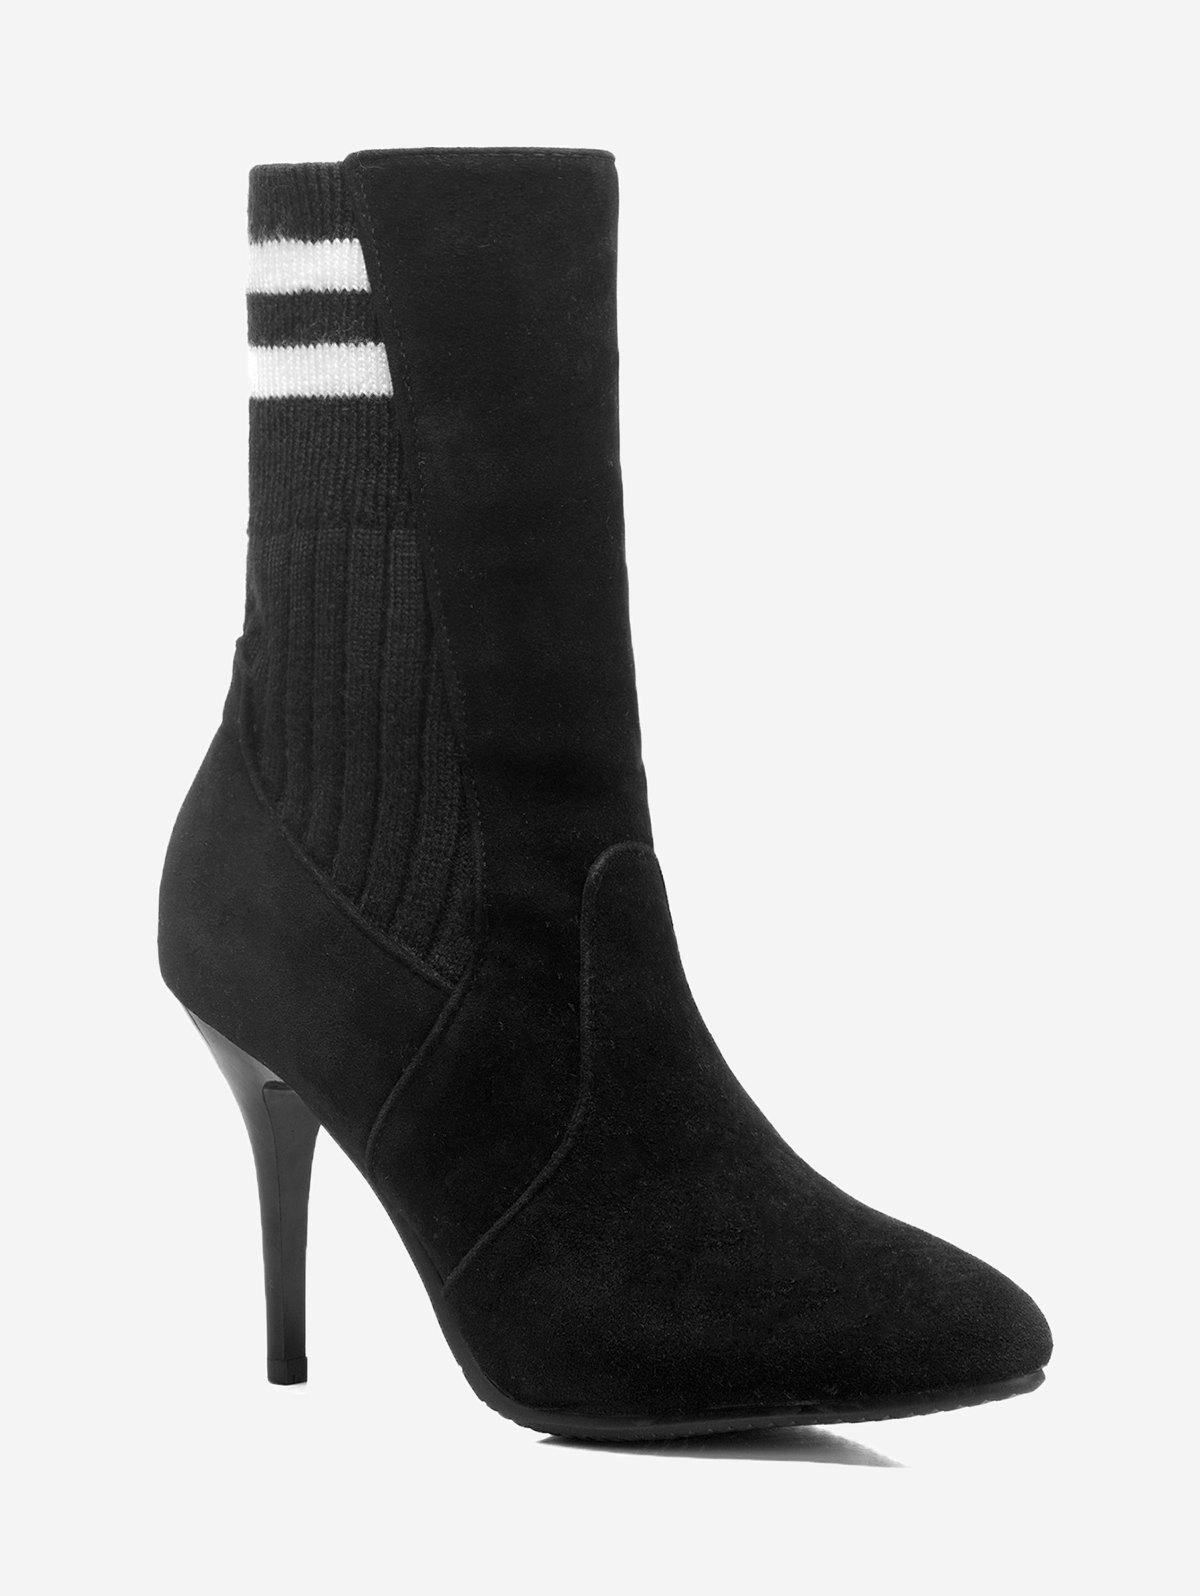 Shop Plus Size Stiletto Heel Striped Sock Boots